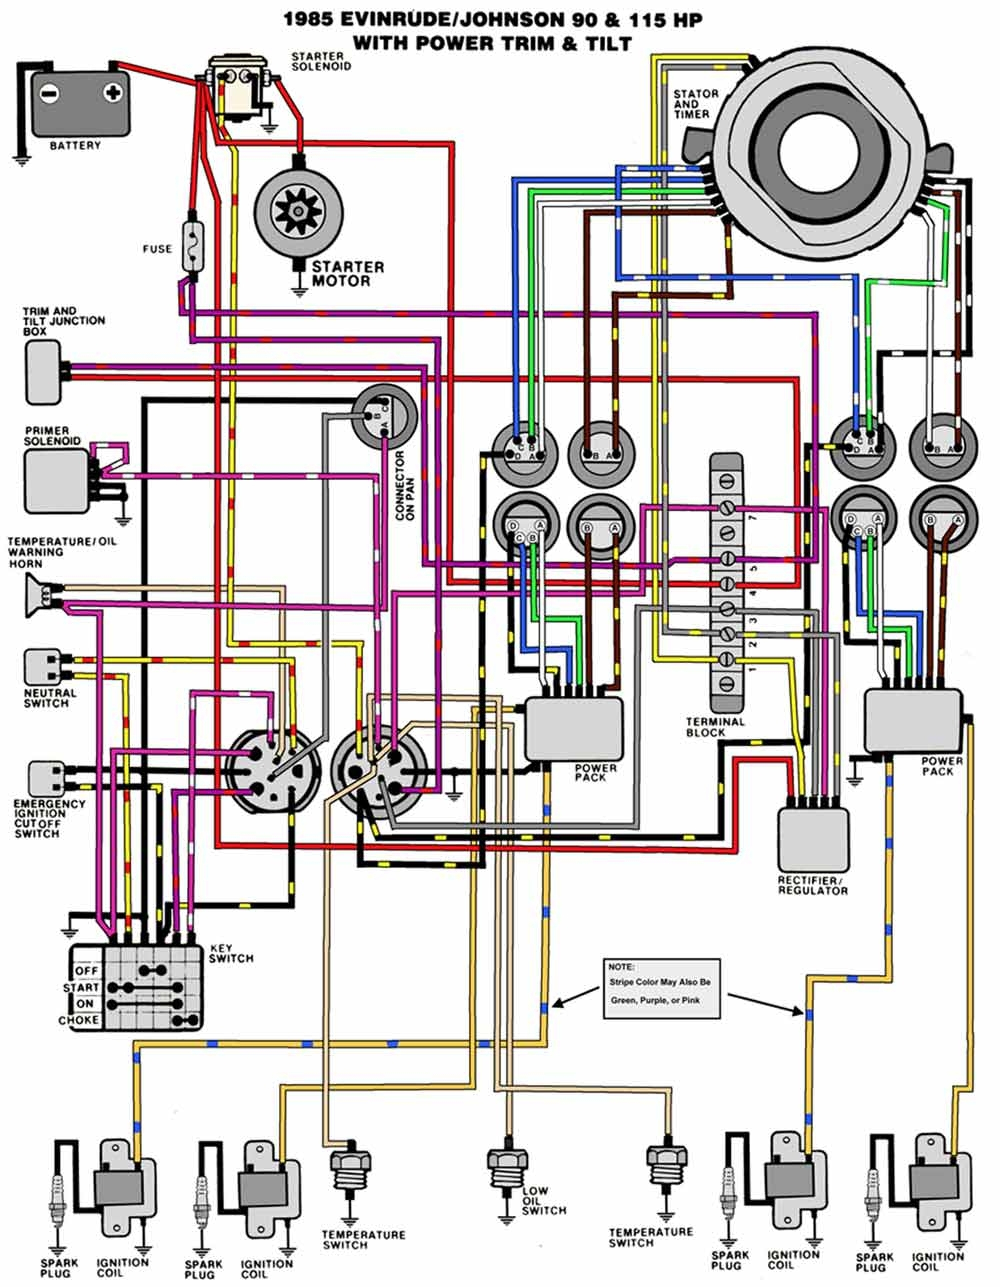 Wiring Diagram Also Johnson Outboard Ignition Switch Wiring Diagram - Johnson Outboard Ignition Switch Wiring Diagram